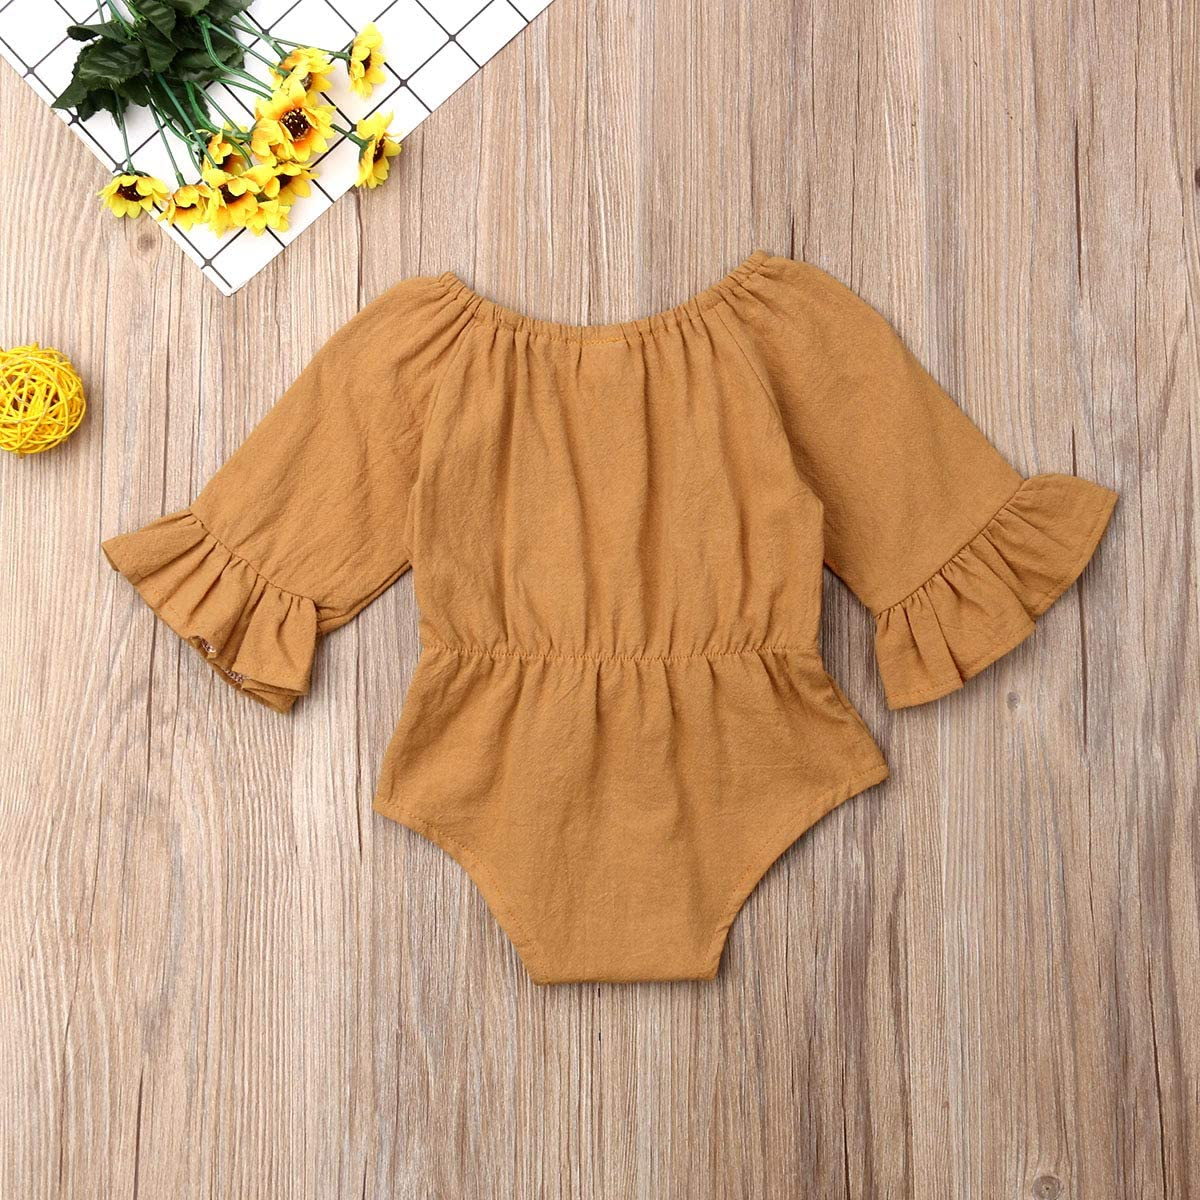 zeyan97 Newborn Infant Fall Outfits Jumpsuit Solid Color Long Sleeve Bow Ruffled Newborn Autumn Outfit